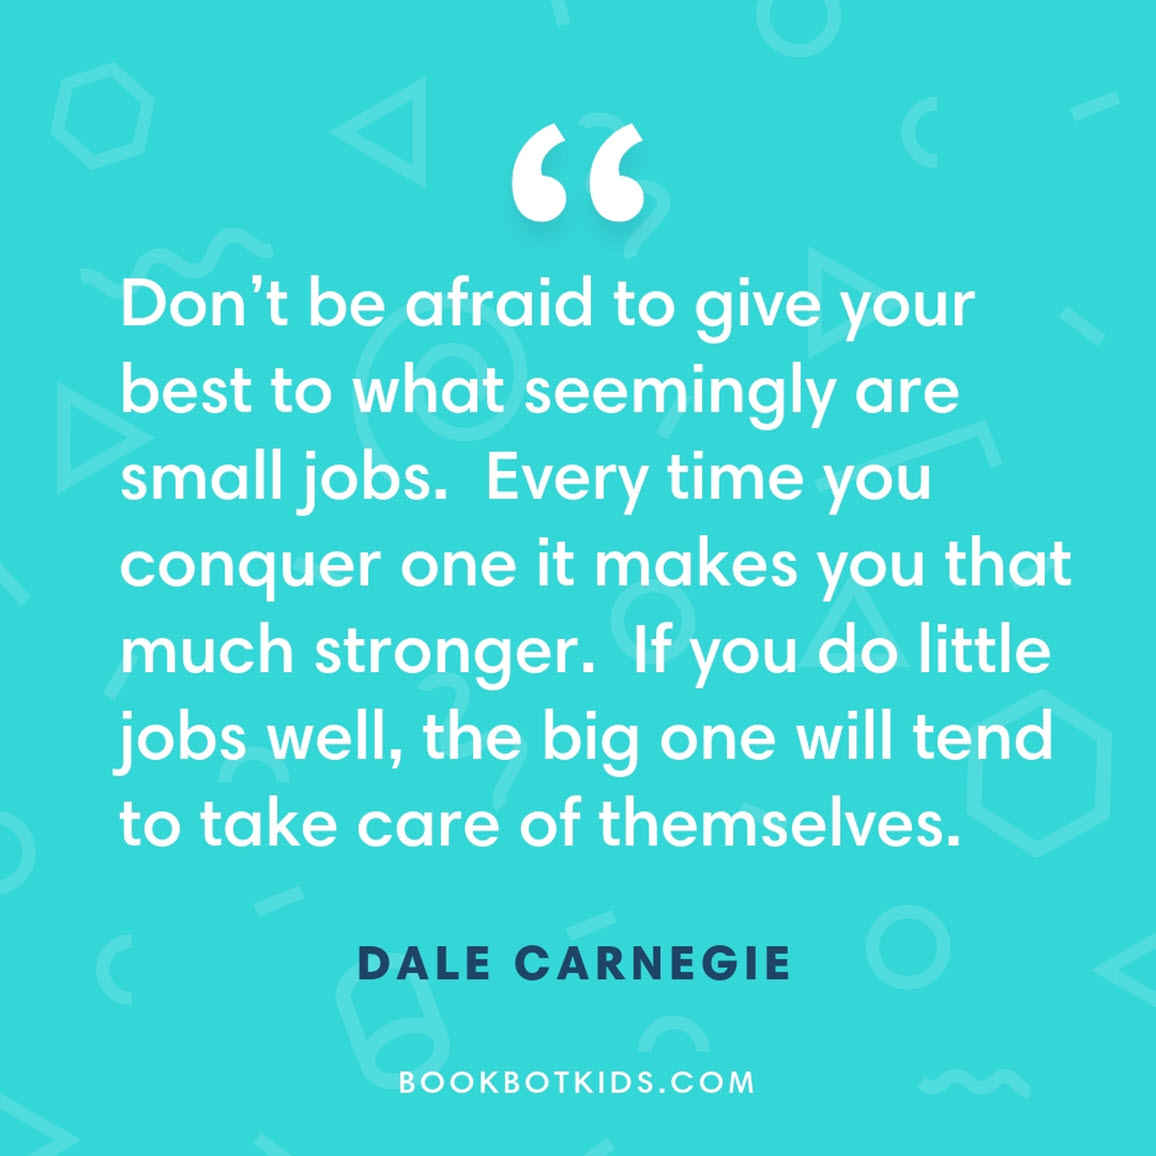 Don't be afraid to give your best to what seemingly are small jobs.  Every time you conquer one it makes you that much stronger.  If you do little jobs well, the big one will tend to take care of themselves. – Dale Carnegie